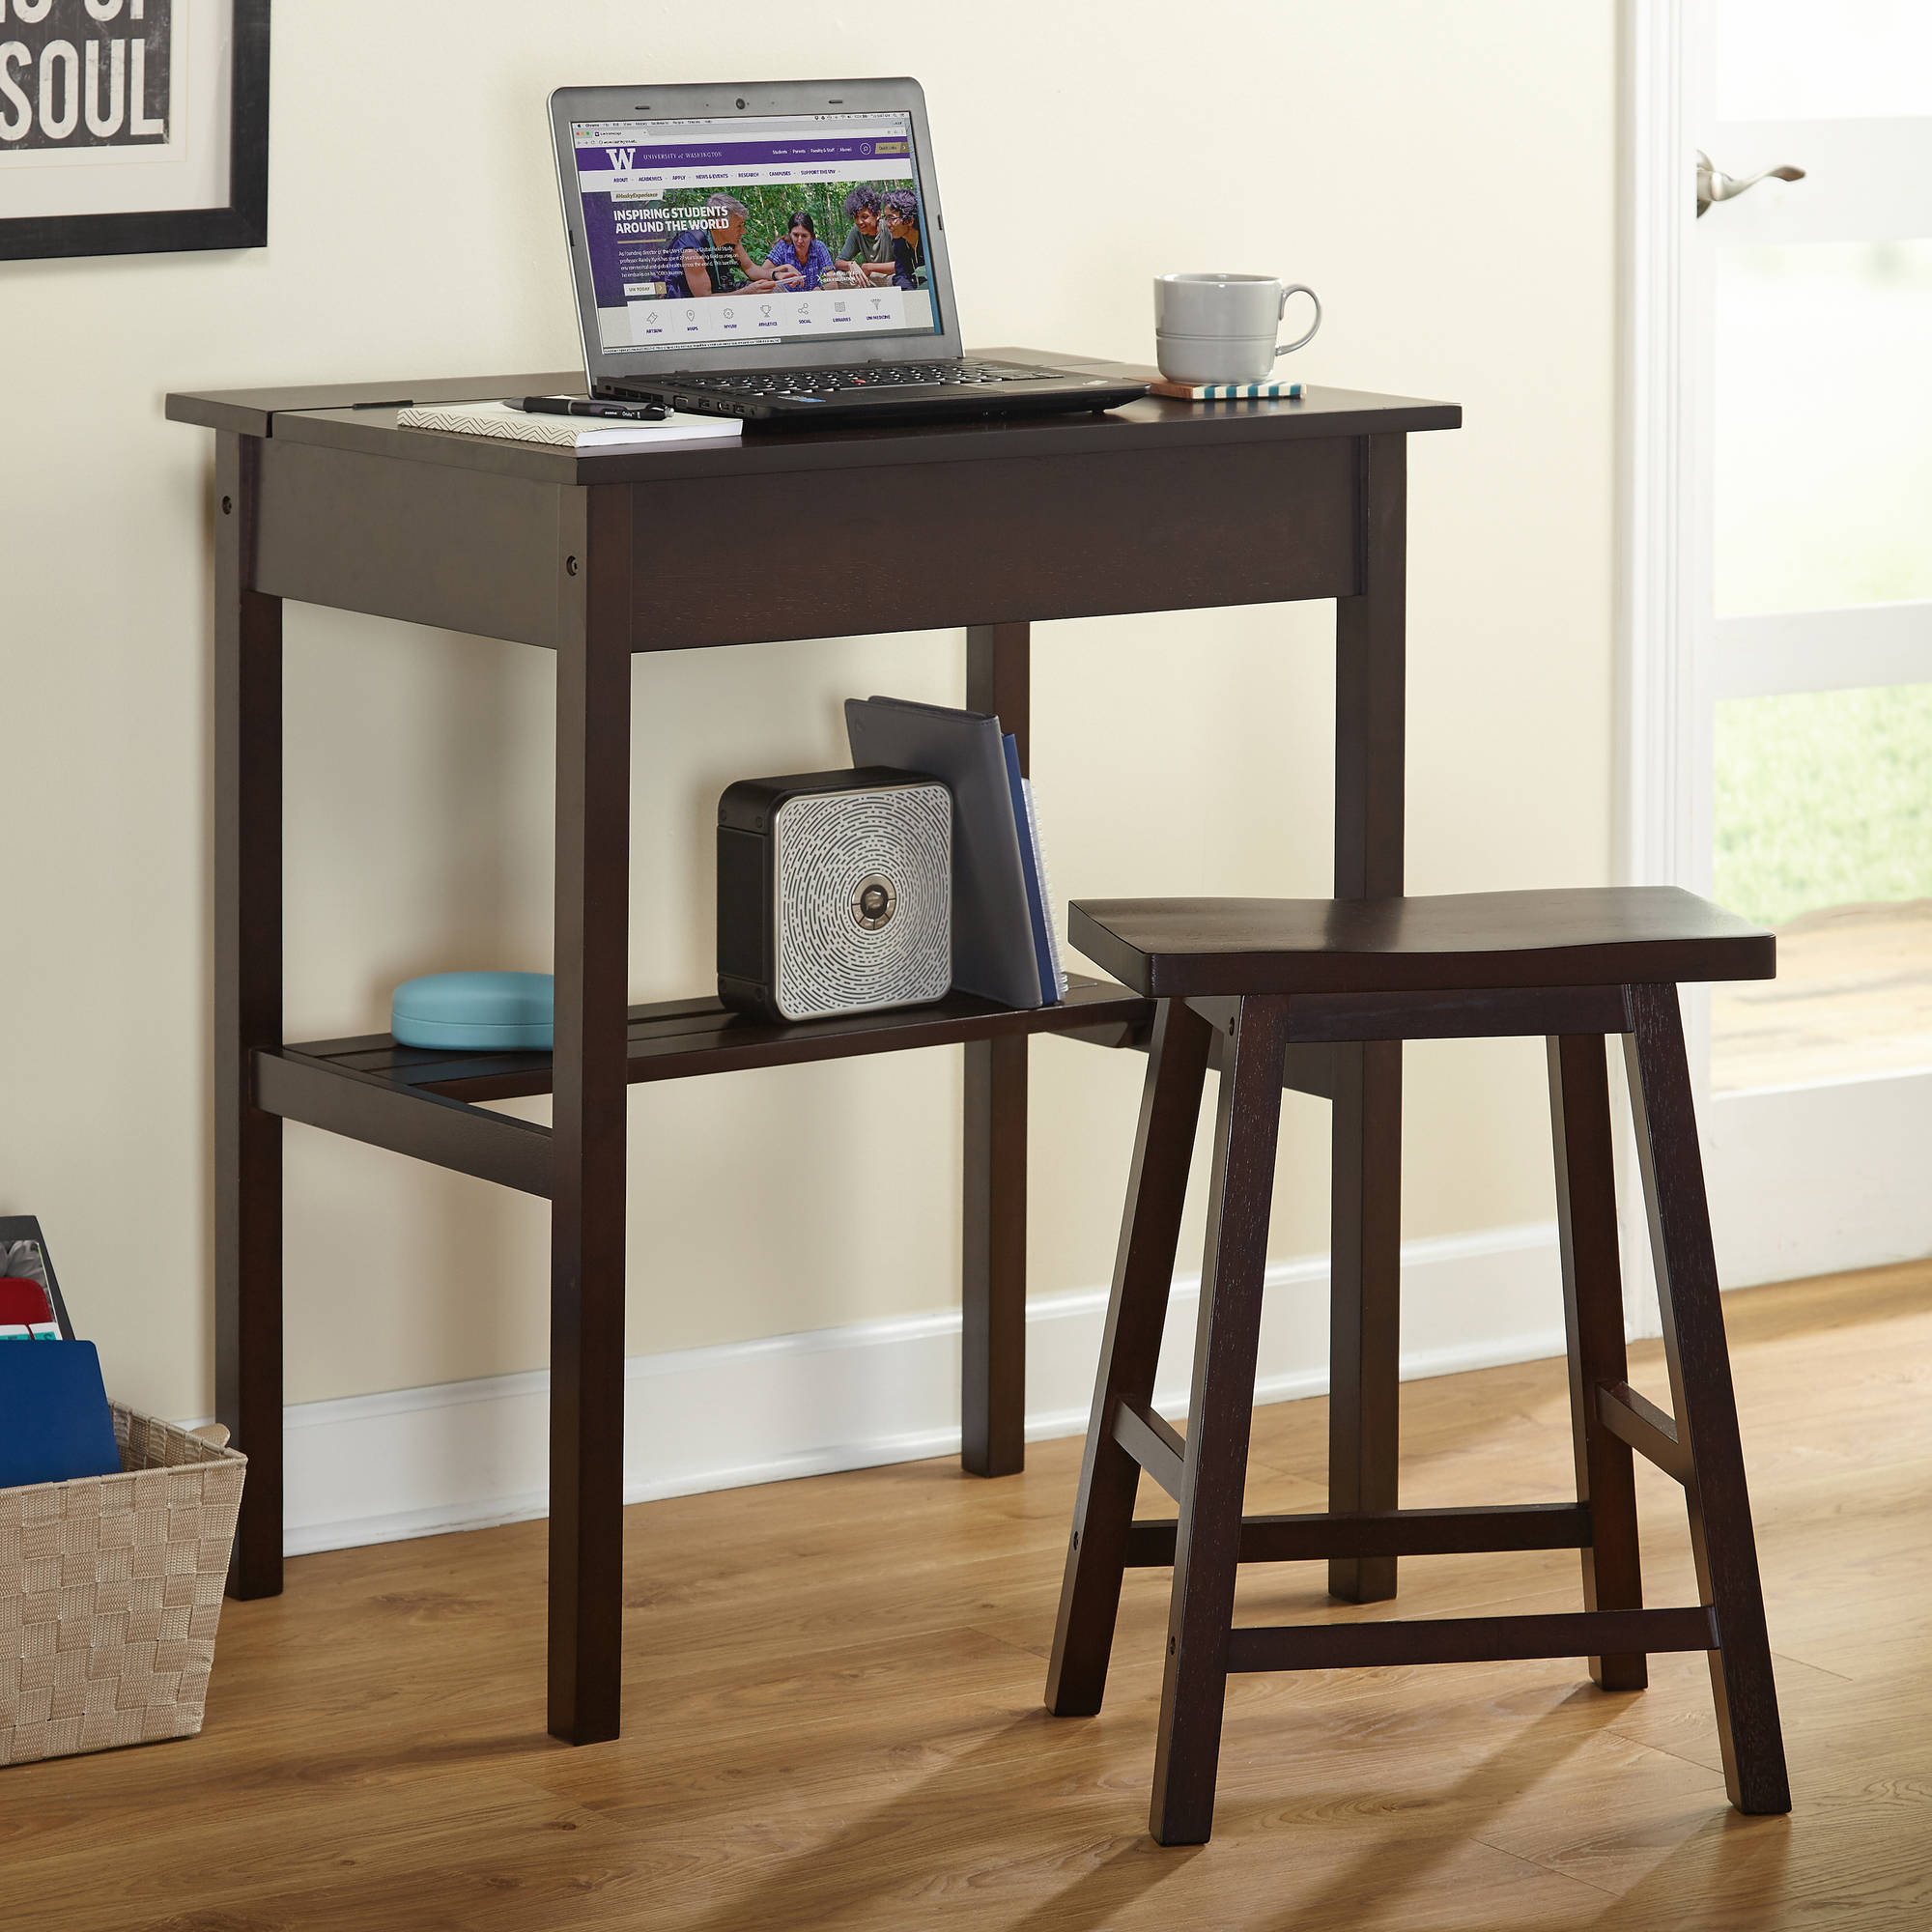 Lincoln Writing Desk And Saddle Stool Value Bundle Espresso